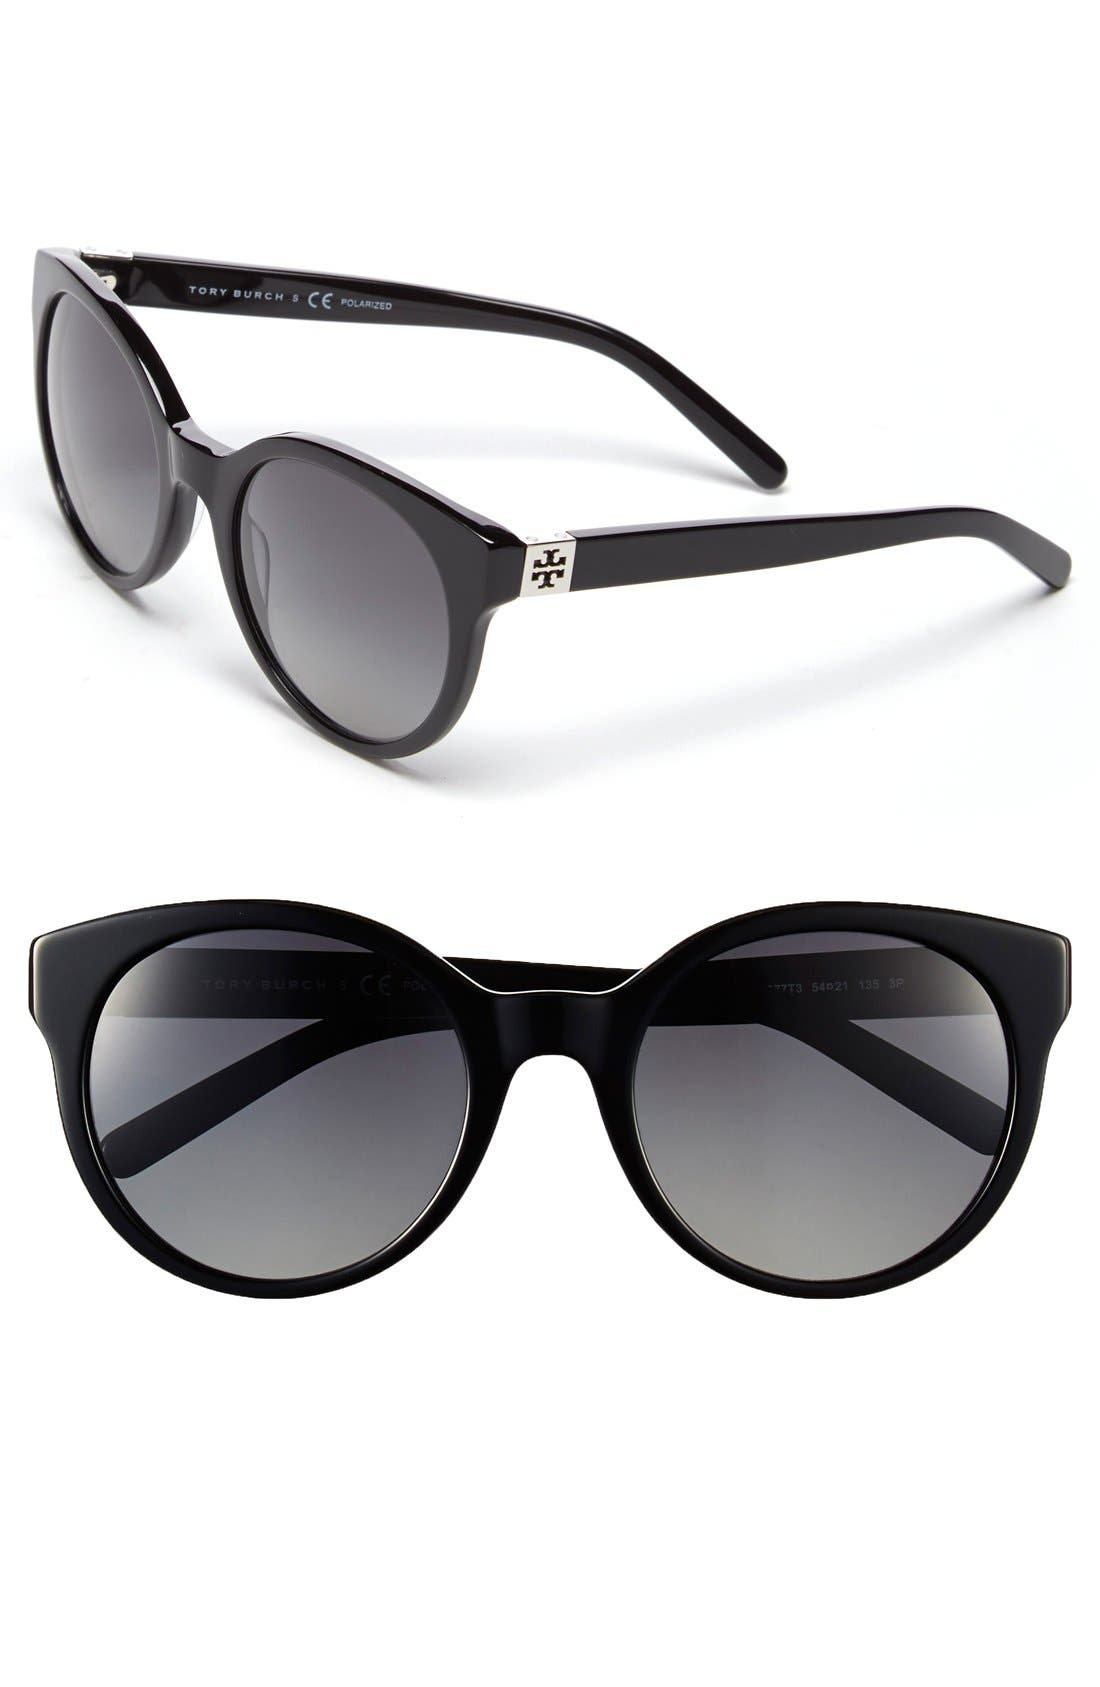 Alternate Image 1 Selected - Tory Burch 54mm Polarized Cat Eye Sunglasses (Nordstrom Exclusive)